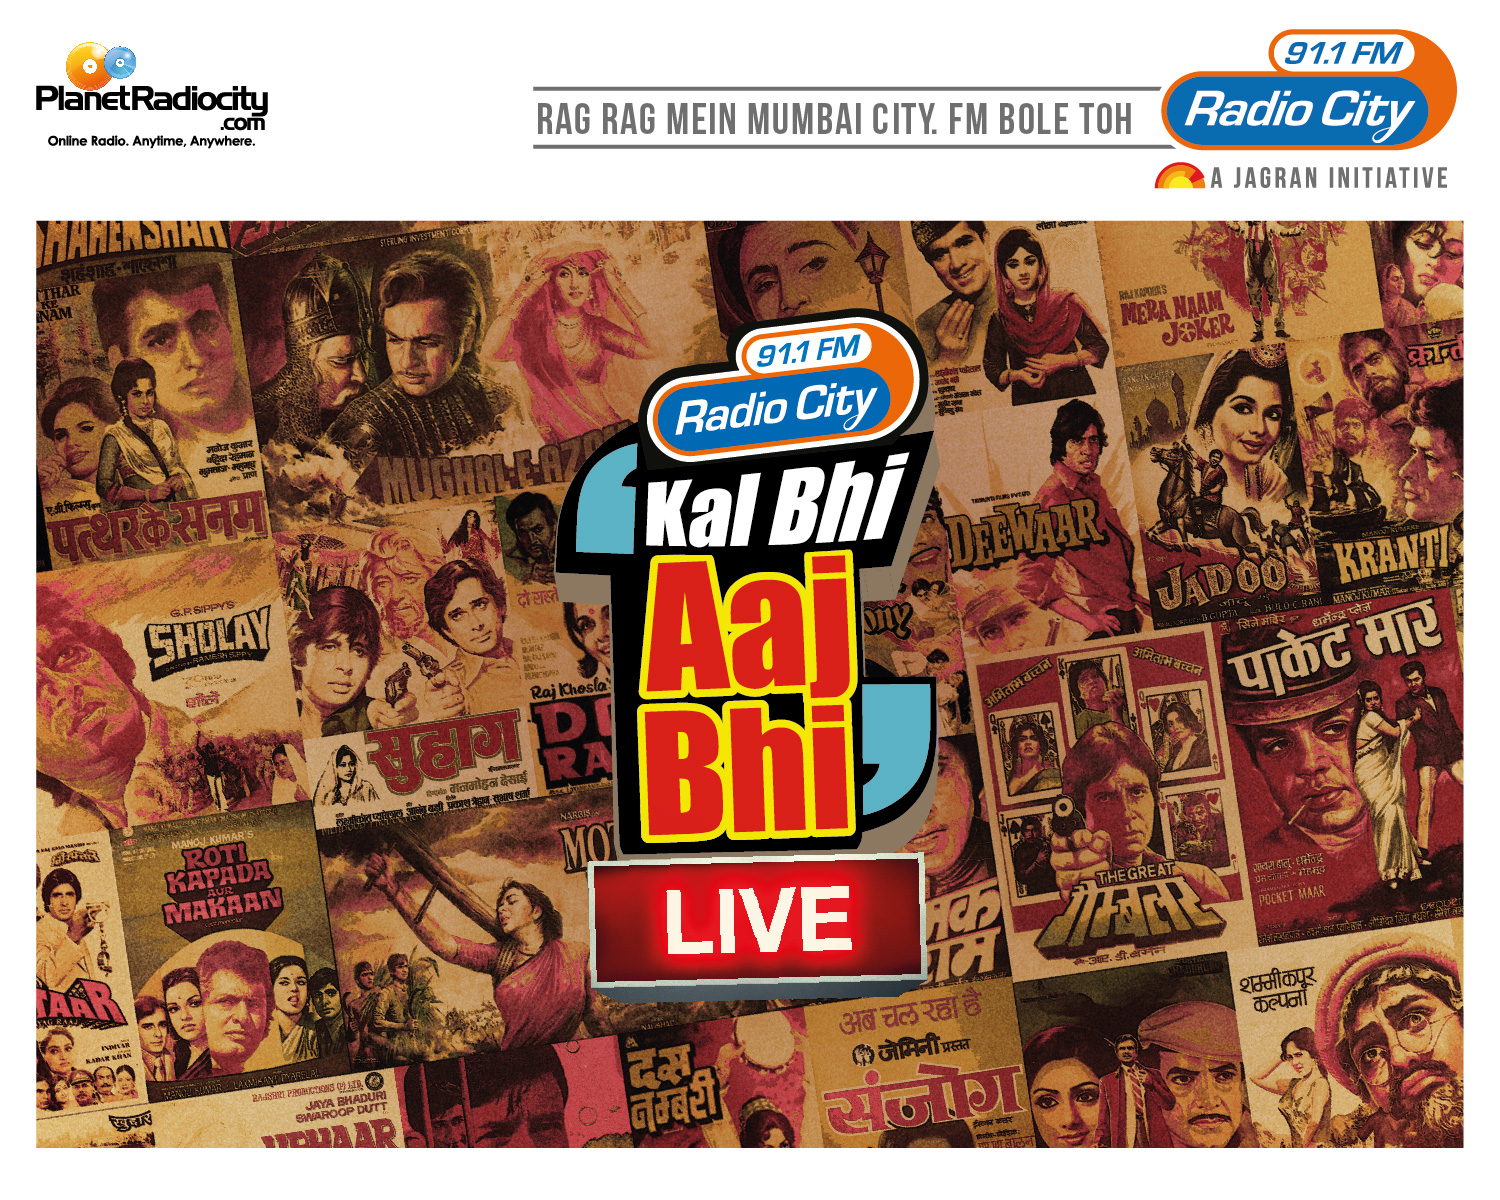 Relive the golden era of Bollywood with Radio City 91.1 FM's Kal Bhi Aaj Bhi LIVE